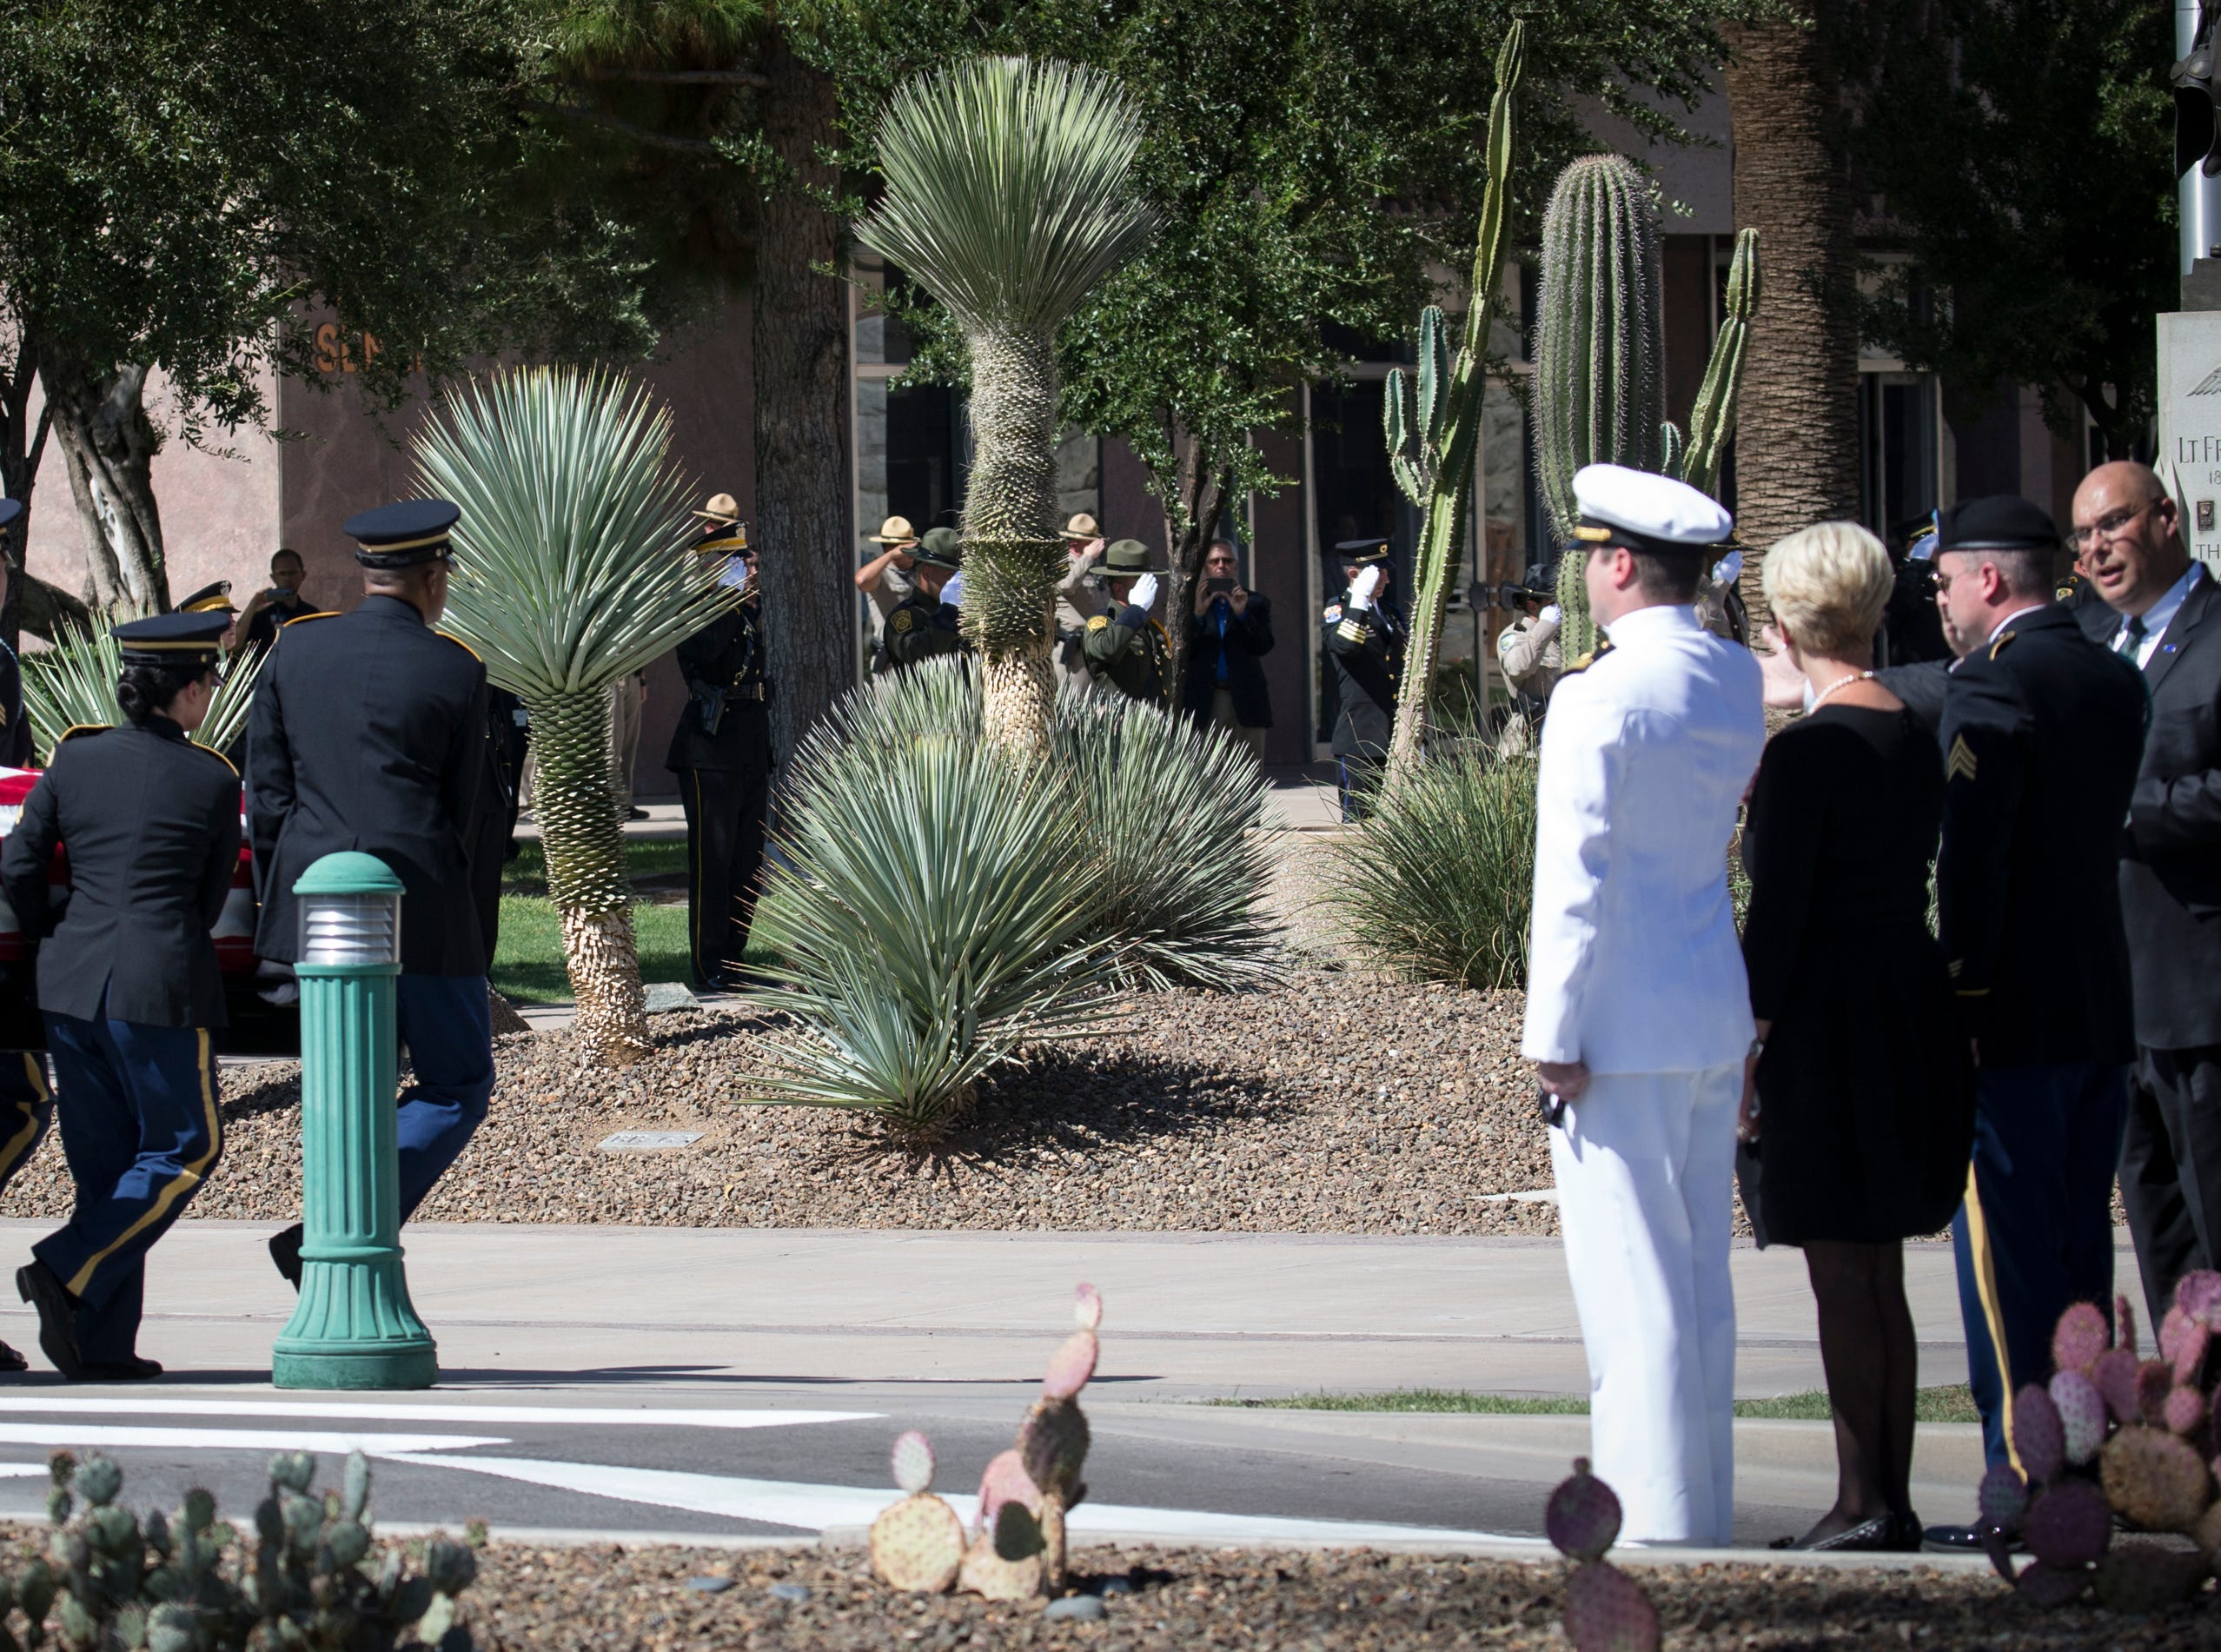 The casket carrying the body of John McCain arrives at the Arizona State Capitol for the memorial service, August 29, 2018, Phoenix, Arizona.